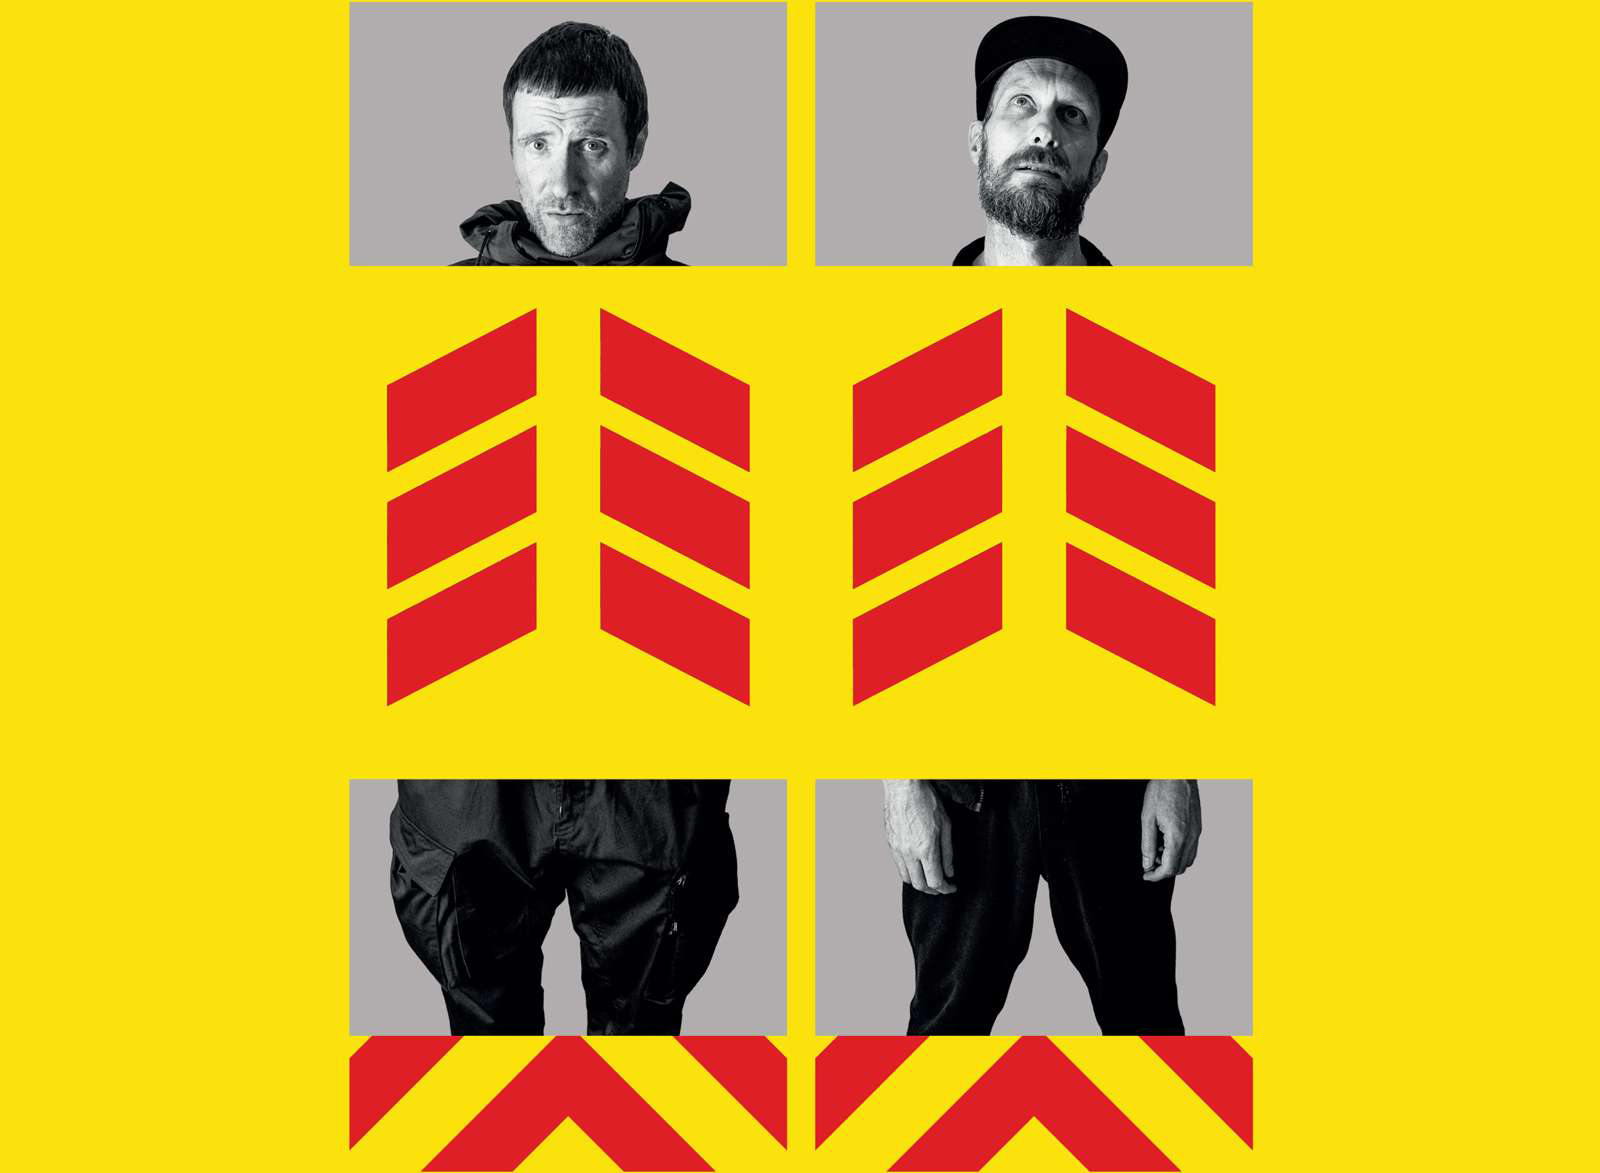 ALBUM REVIEW: Sleaford Mods - Spare Ribs